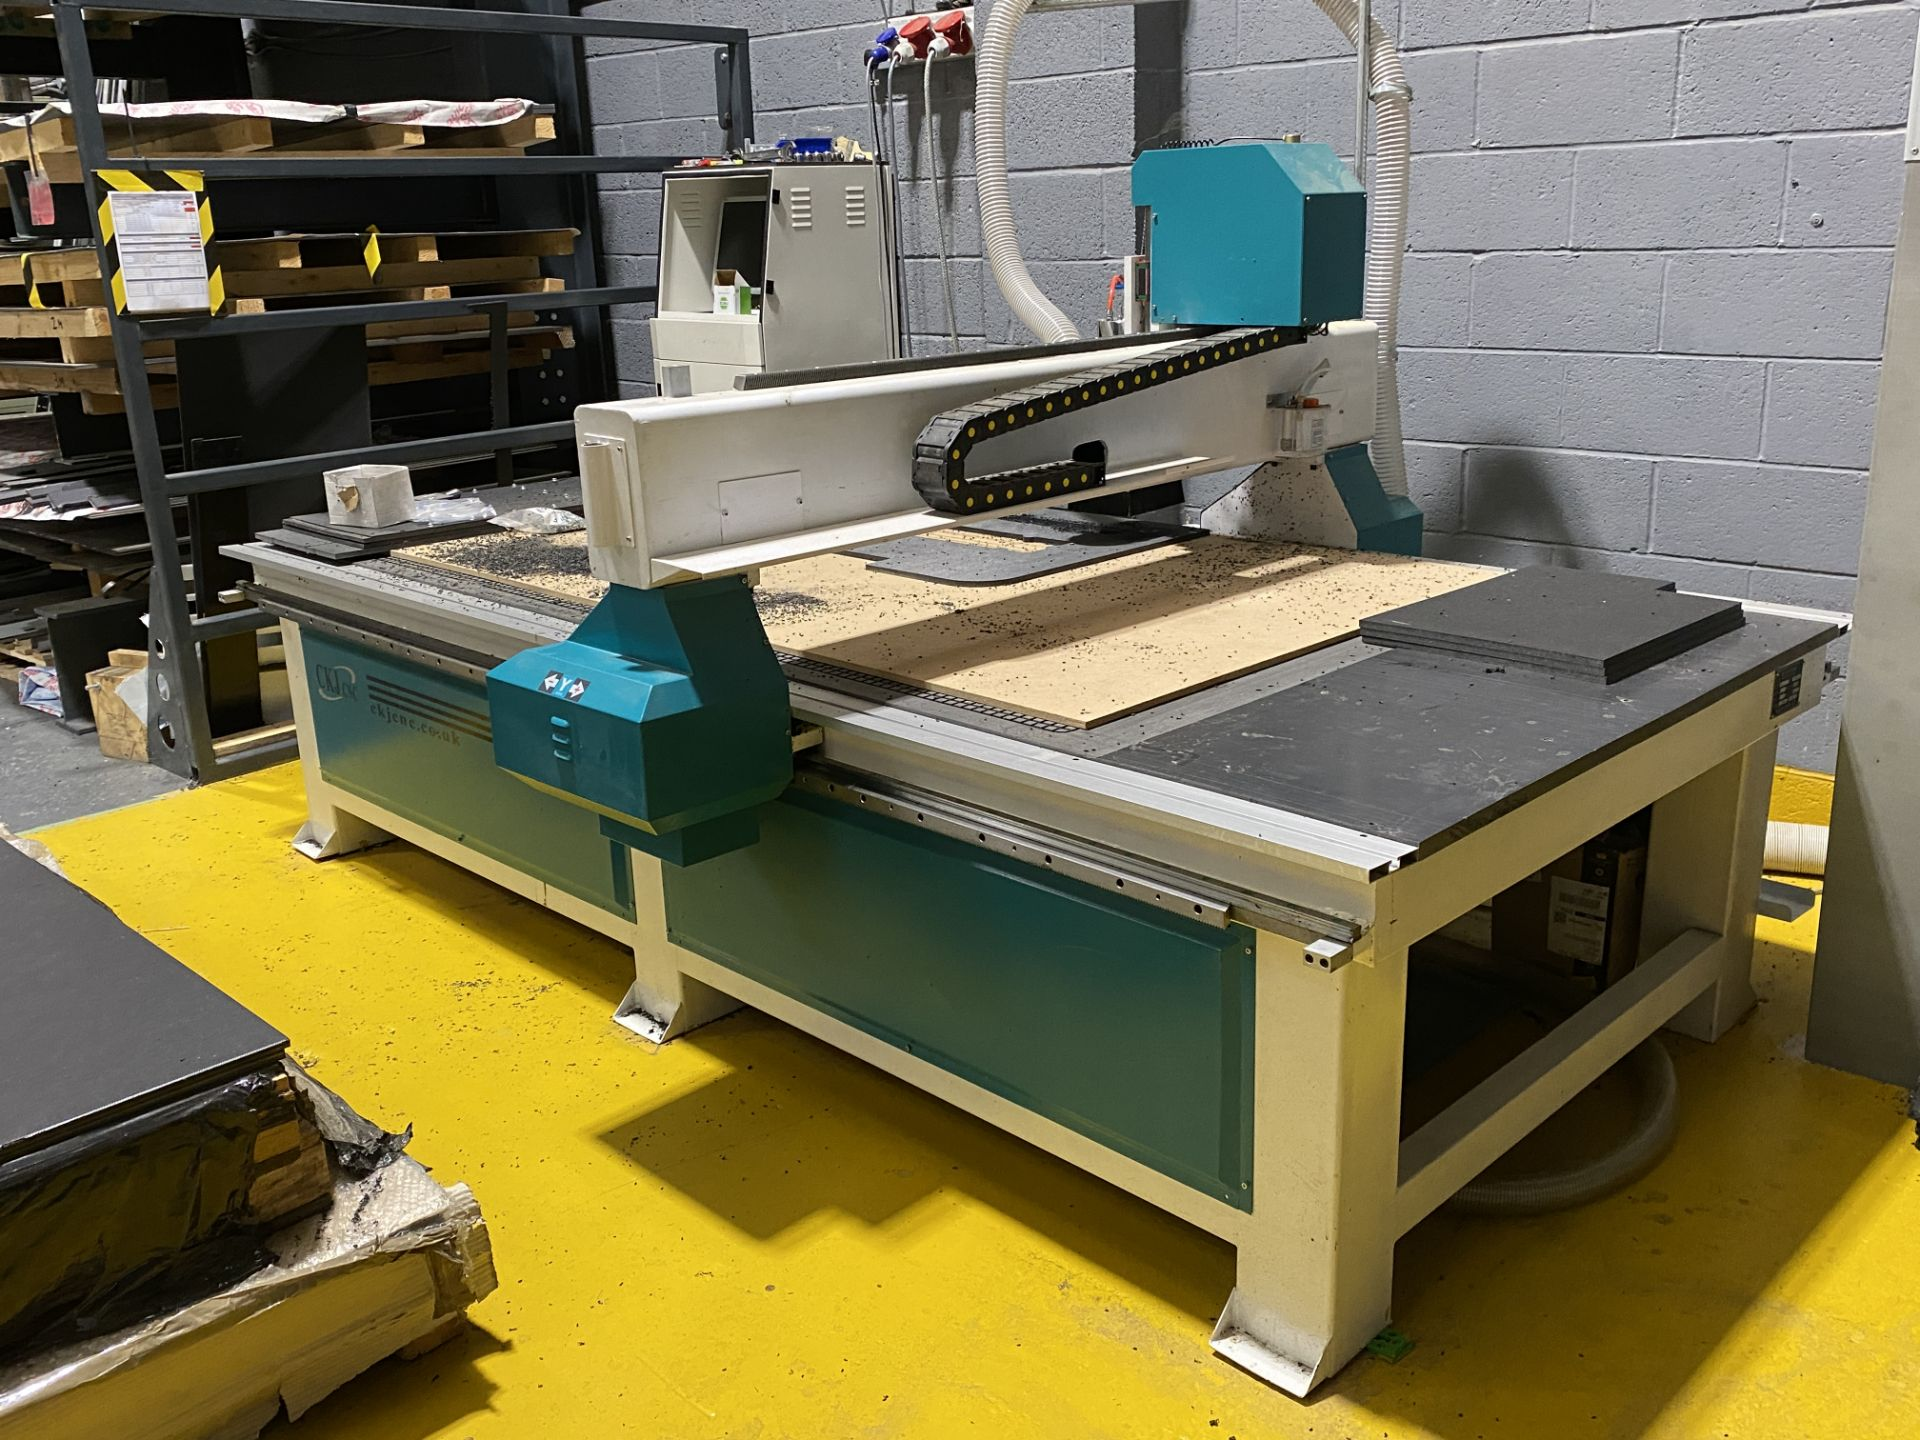 CKJ Model 1325, CNC Router, Working Area 1300mm x 1500mm - Image 2 of 8